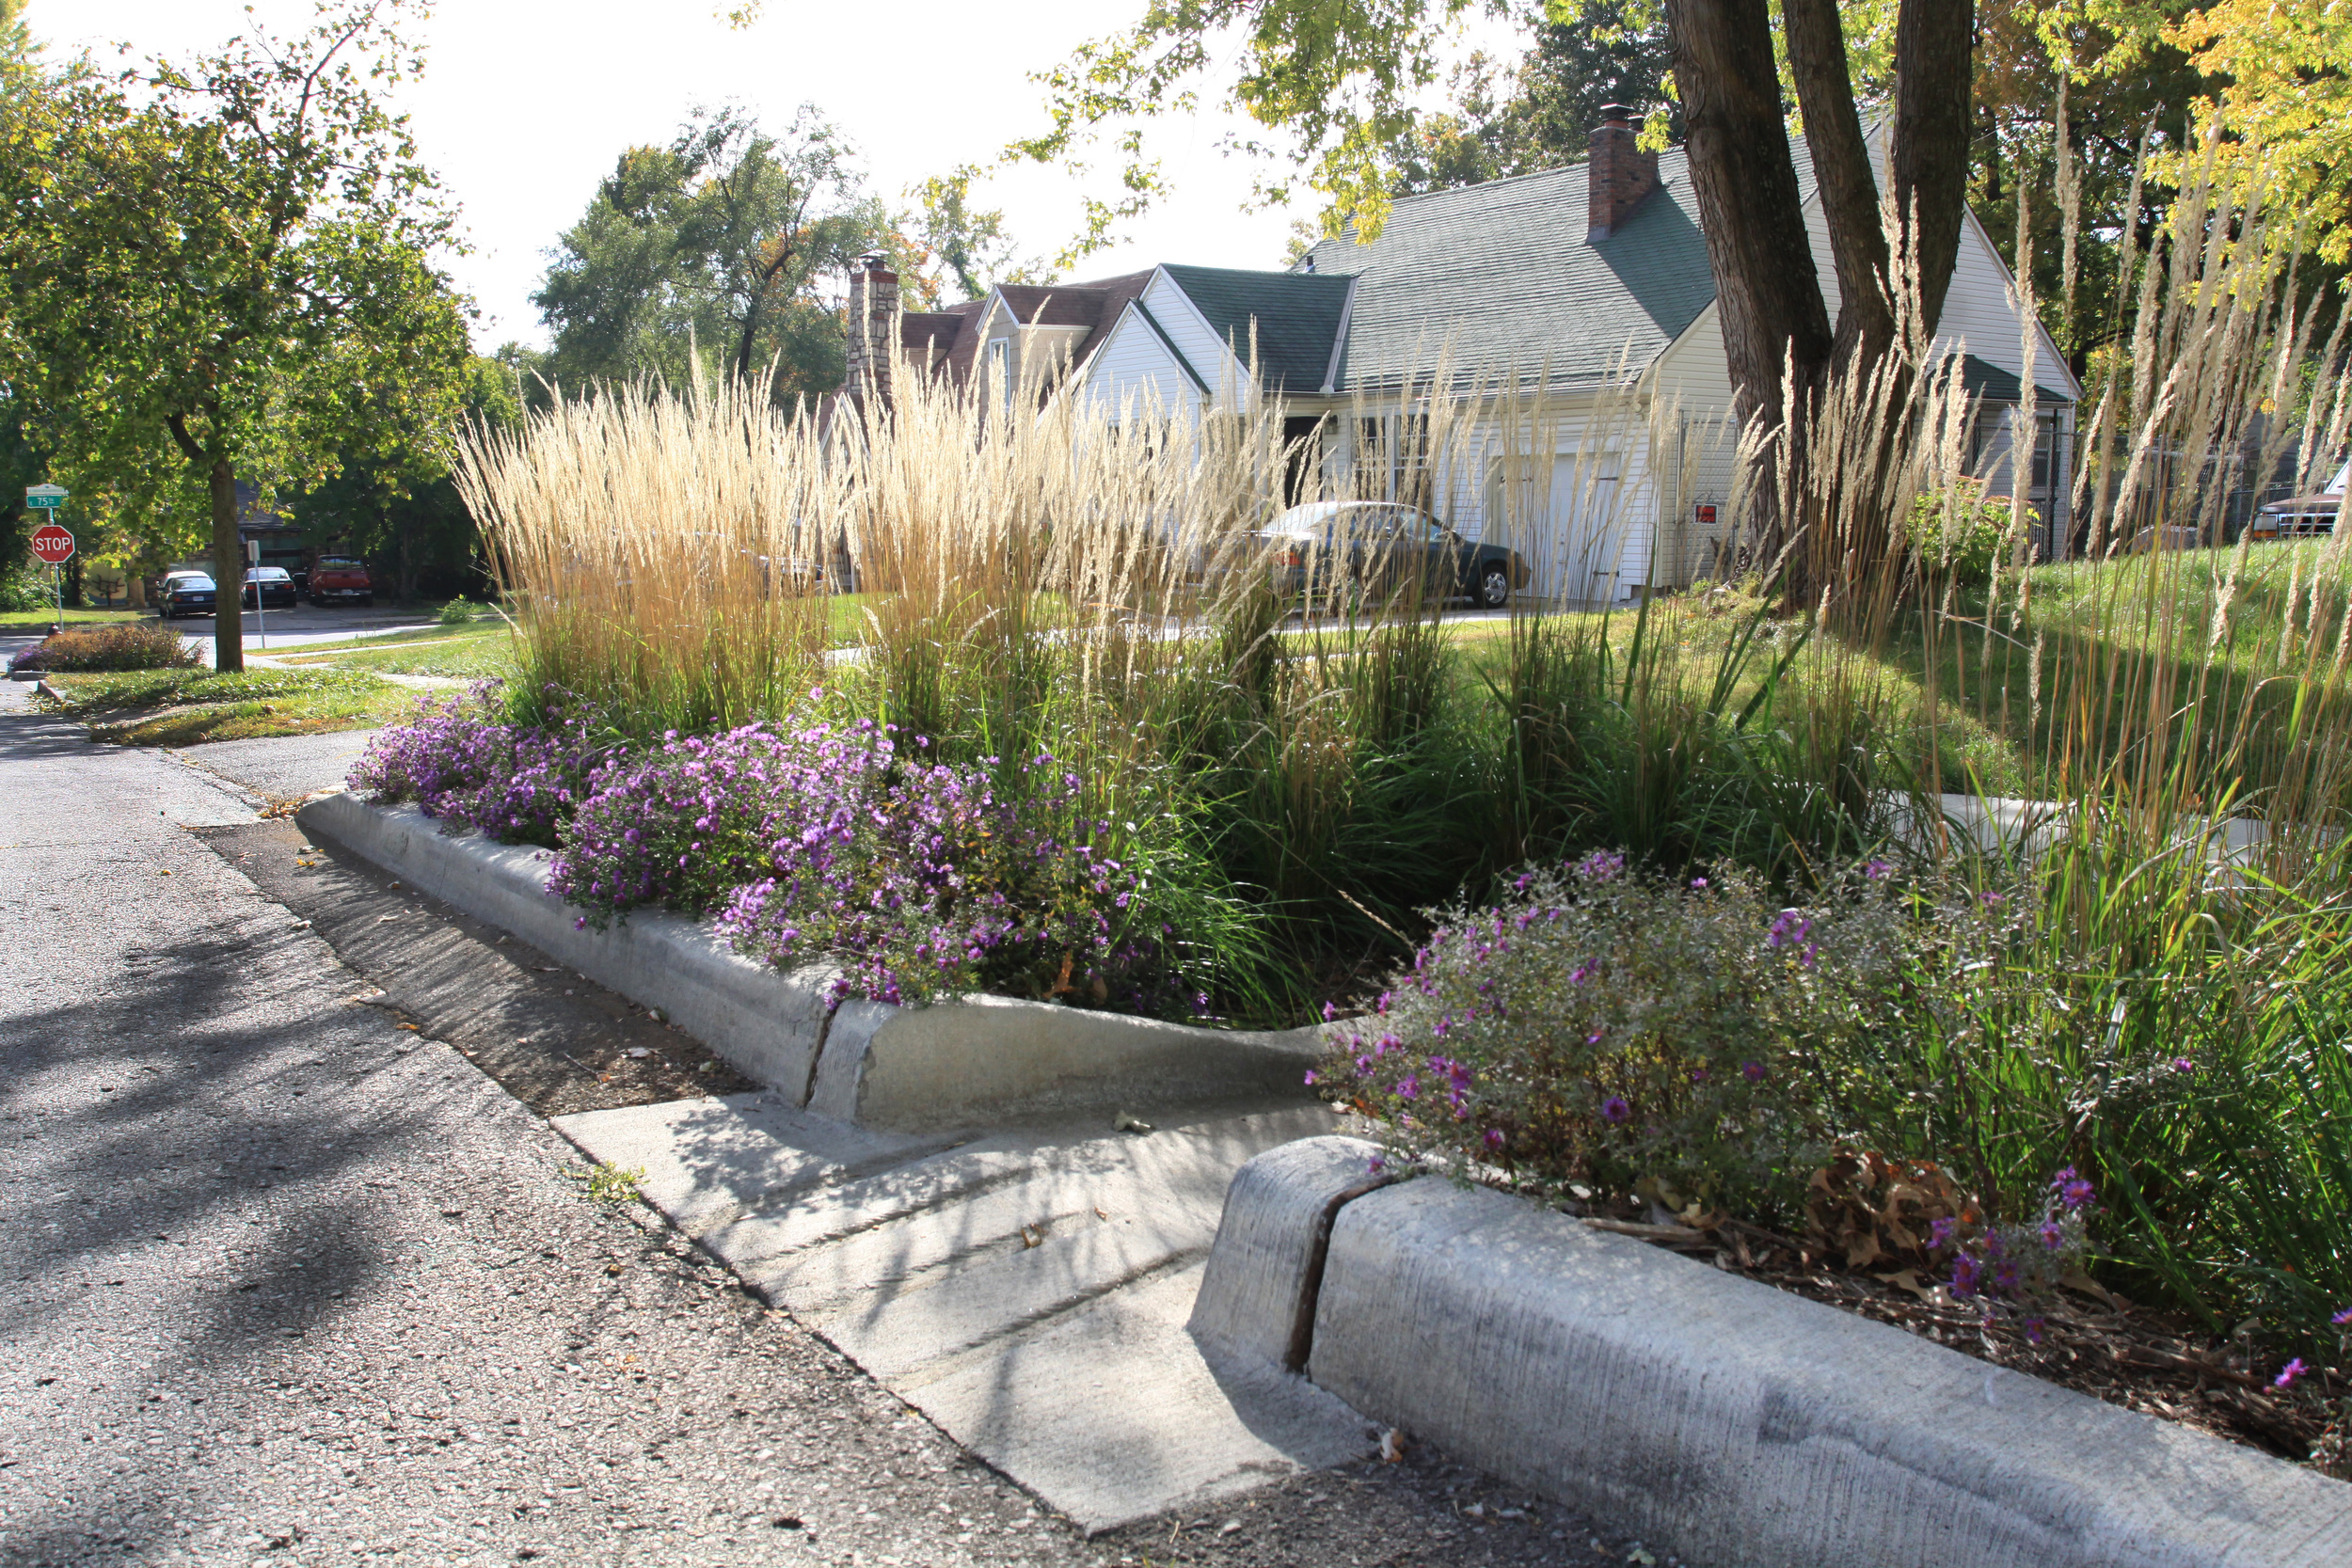 On drier days, the neighborhood's rain gardens are just that - gardens.